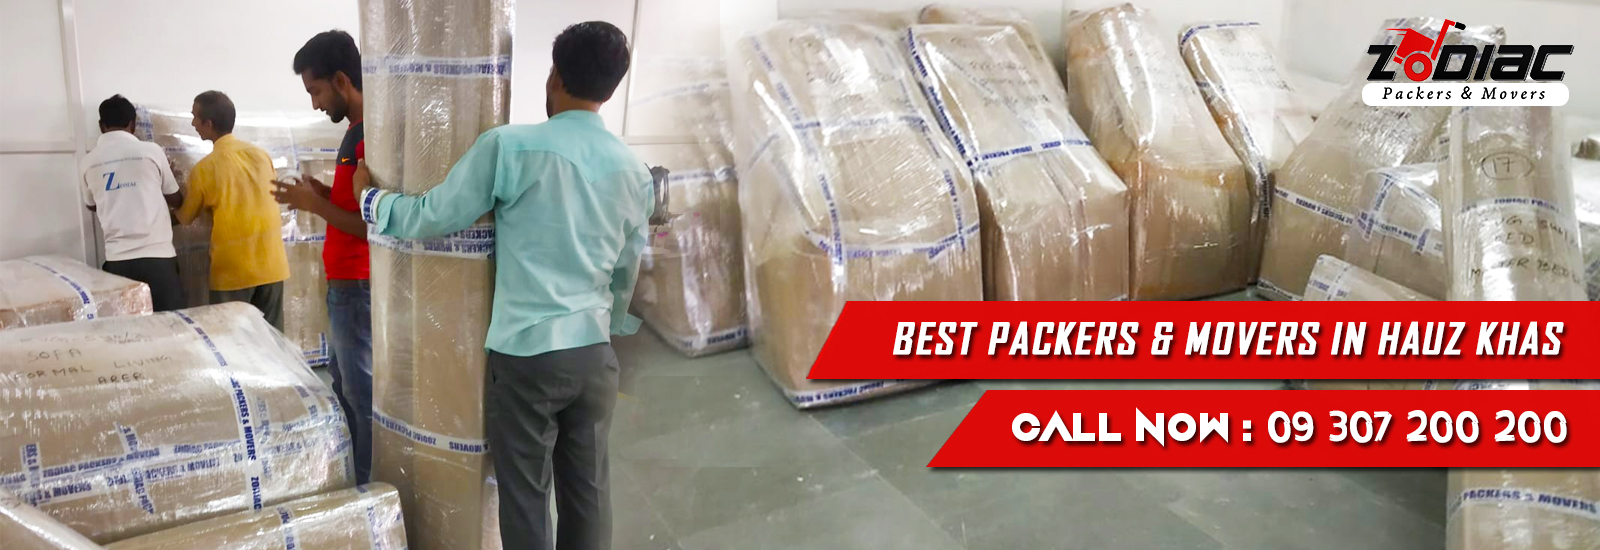 Packers and Movers in Hauz Khas